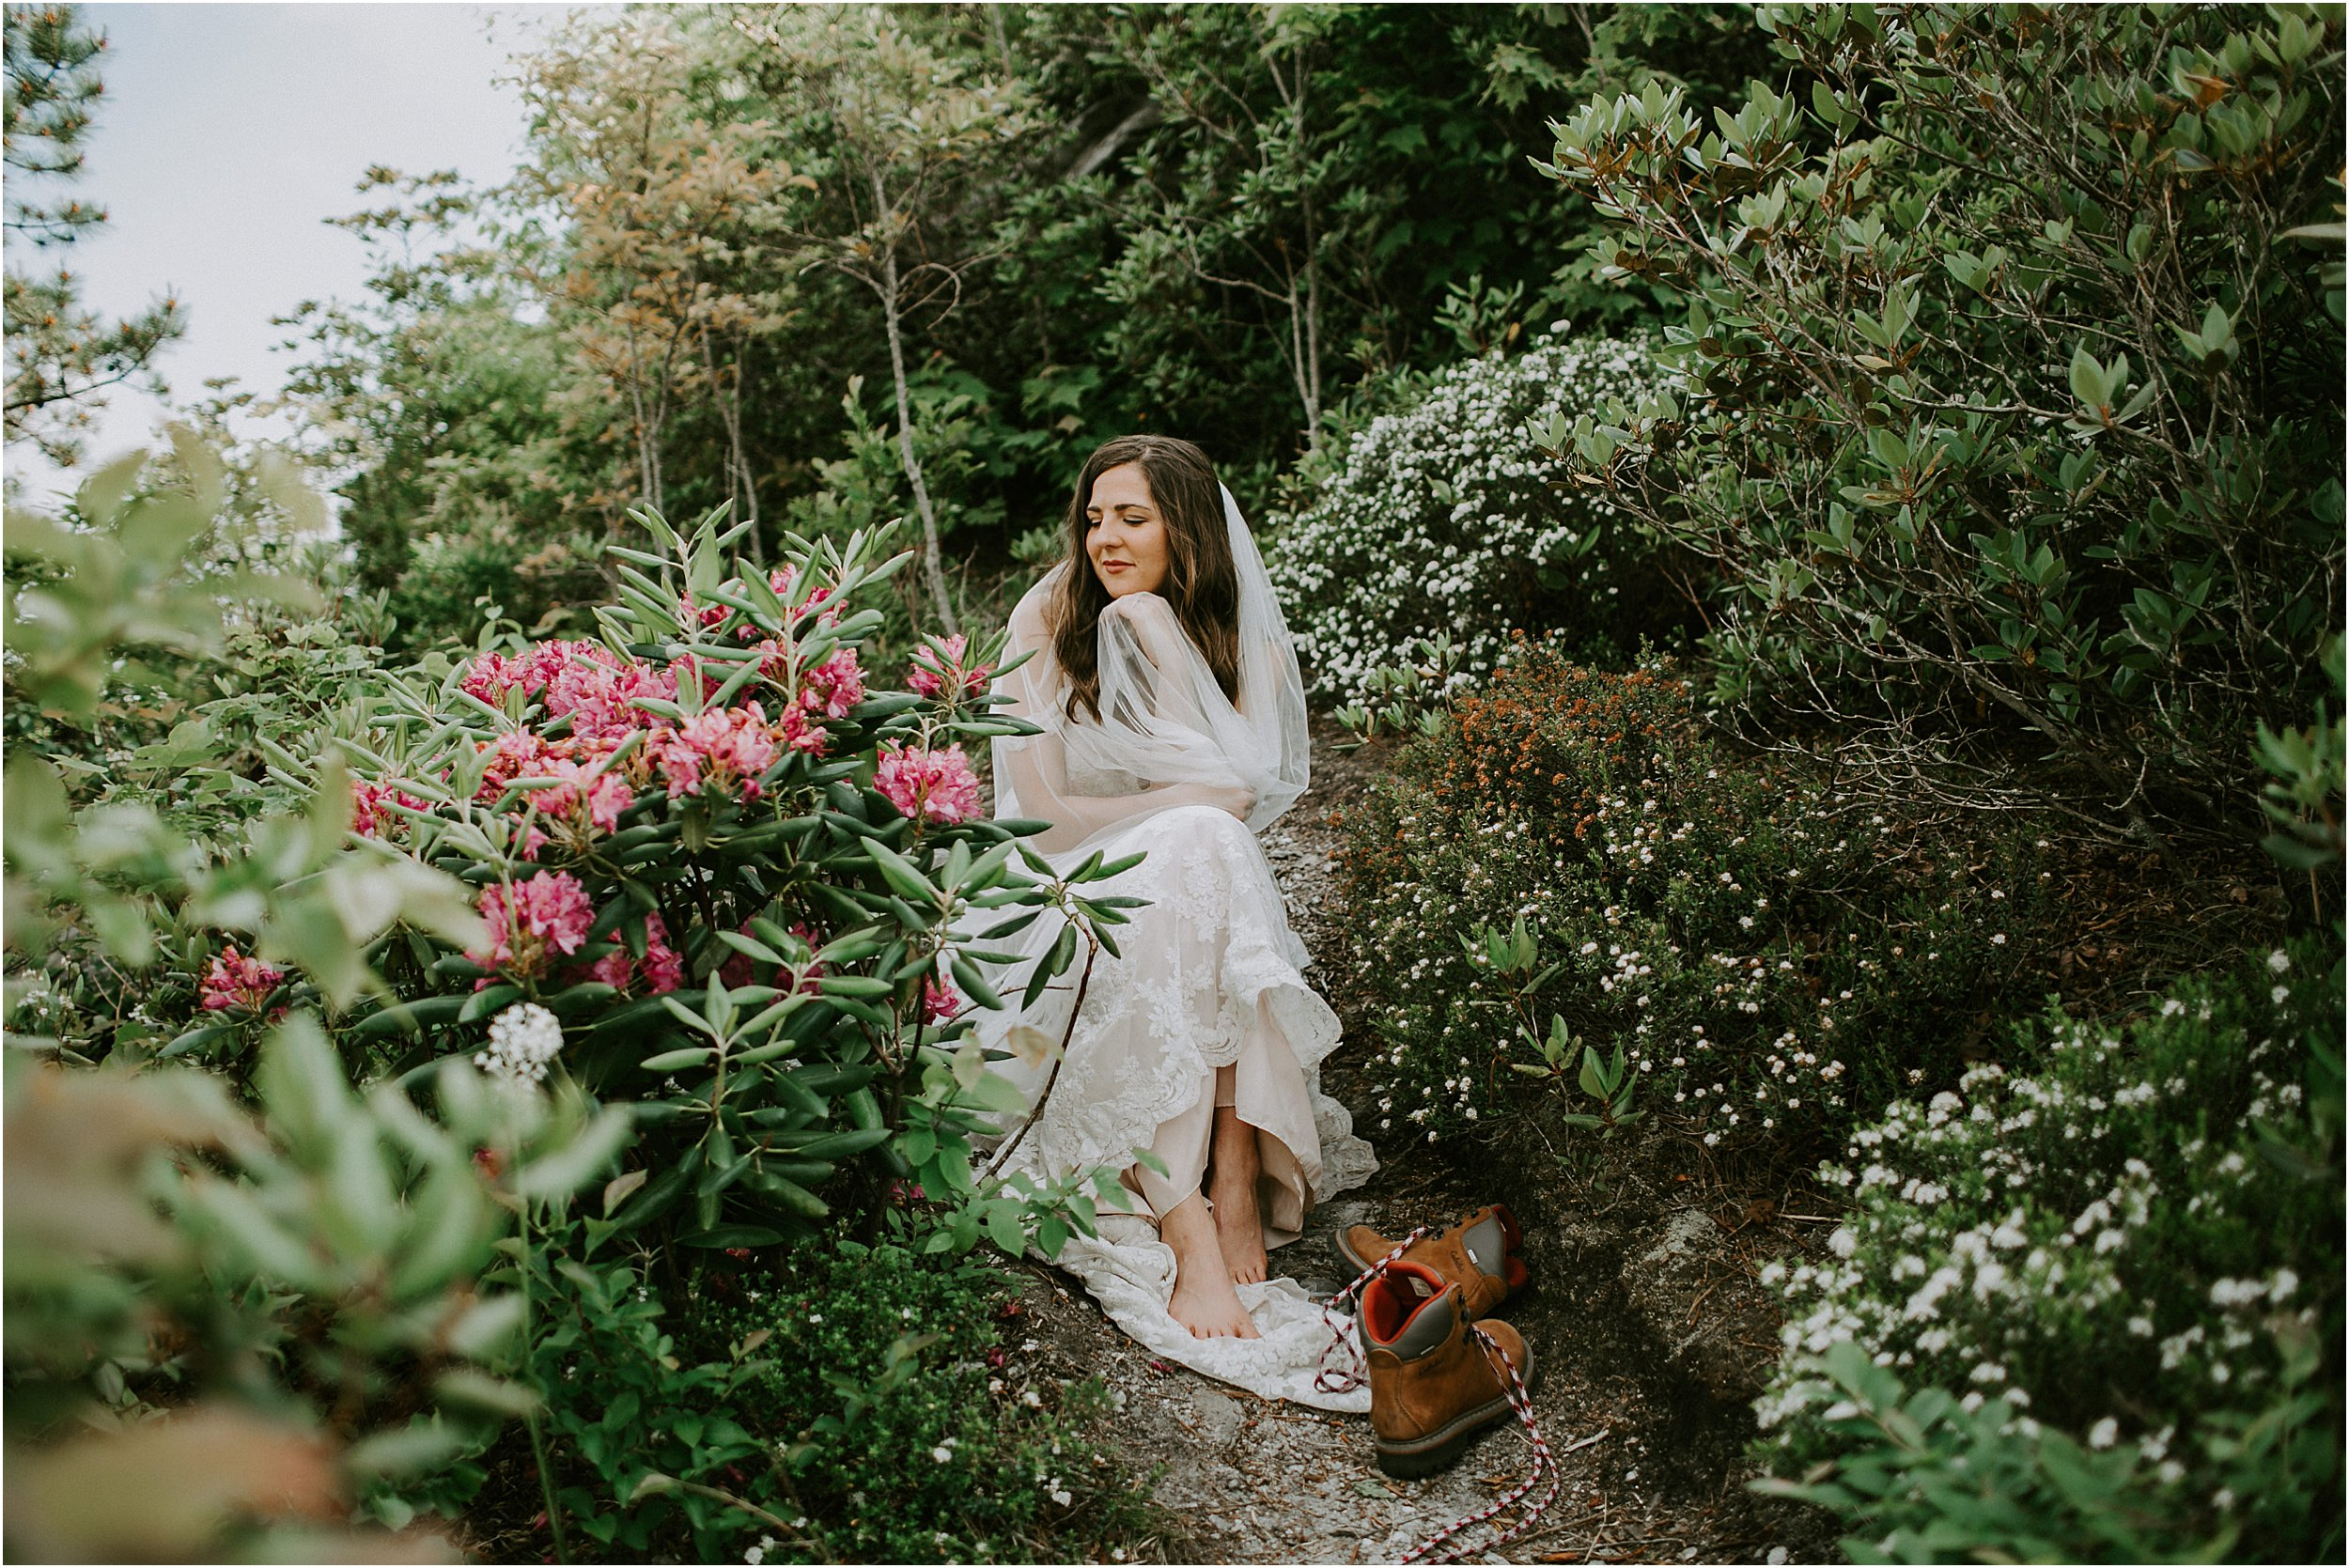 A woman in a wedding dress sits on a trail through bushes and pink flowers. She is barefoot and her hiking boots are off, she is resting.